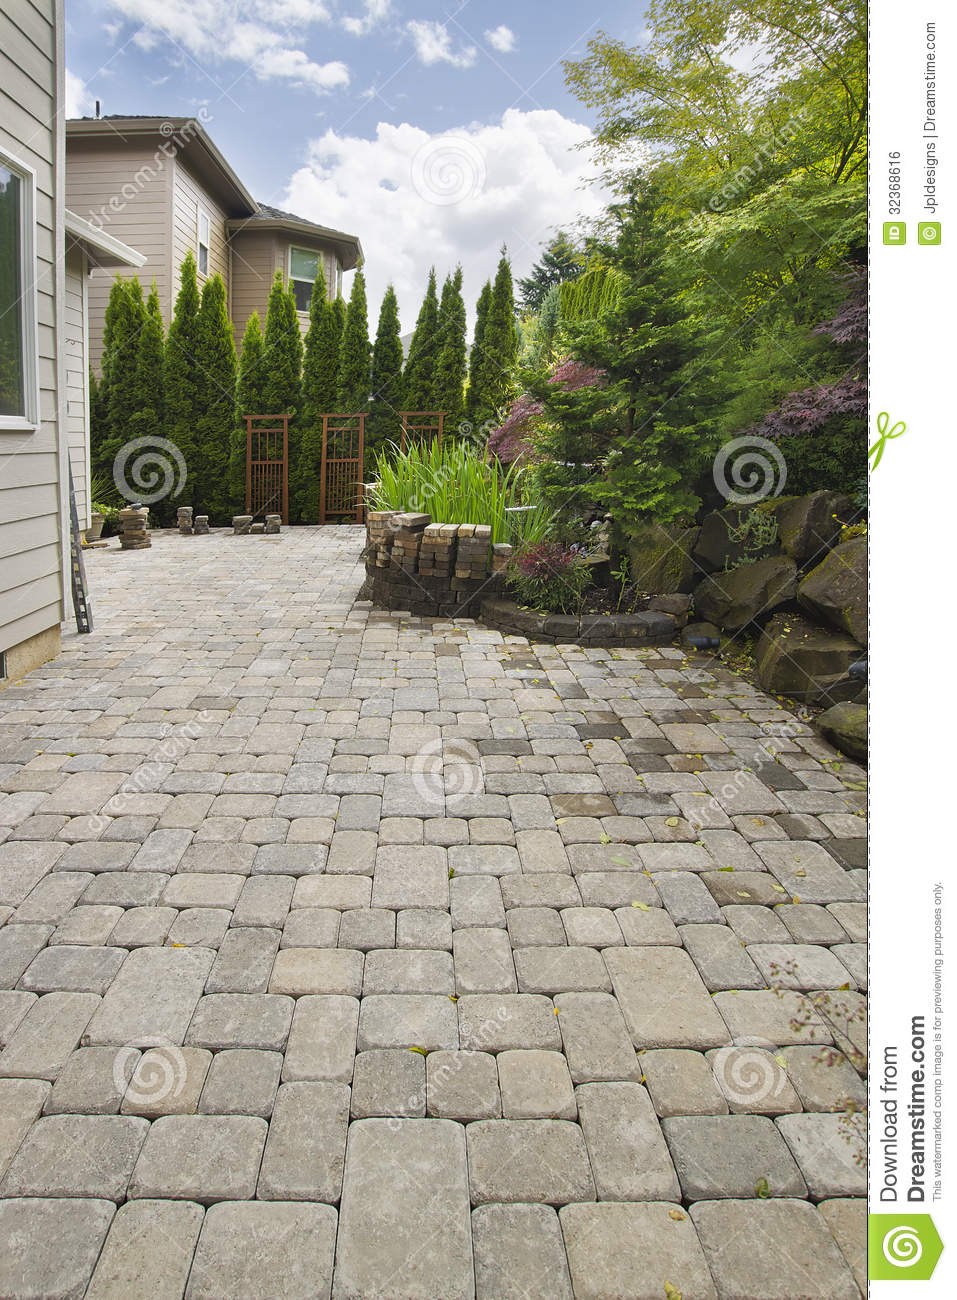 backyard brick paver patio with pond royalty free stock image image